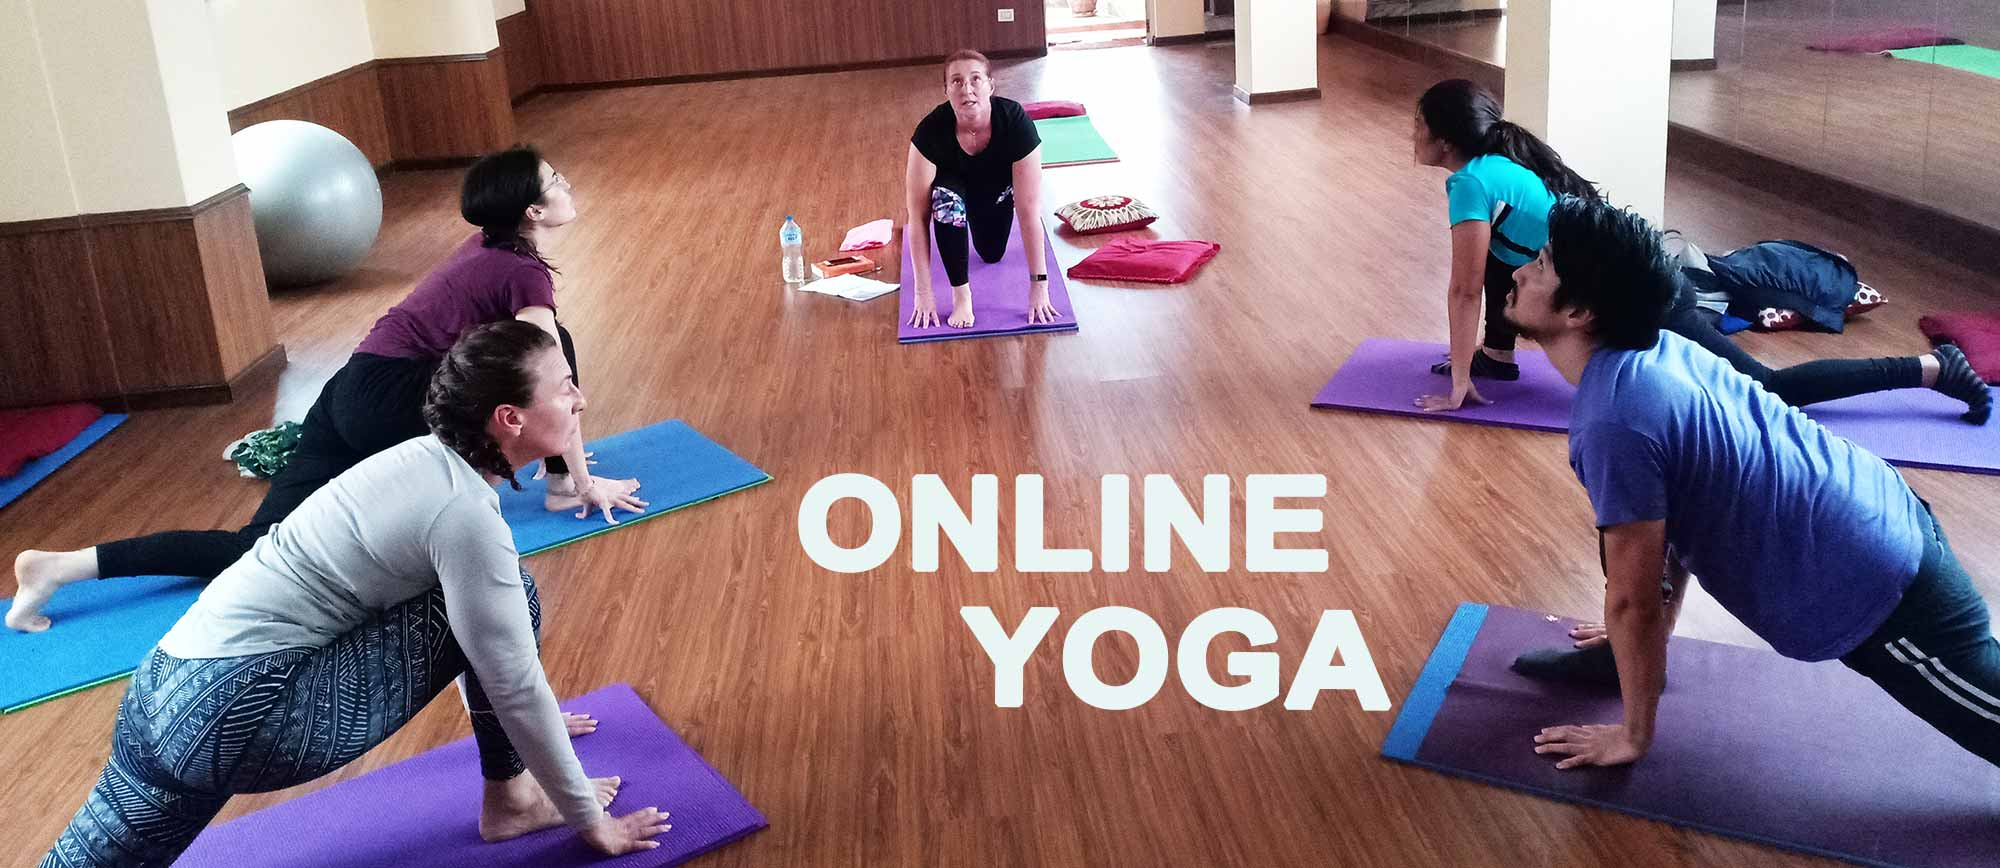 Why Online Yoga Teacher Training During Corona Virus Quarantine Nepal